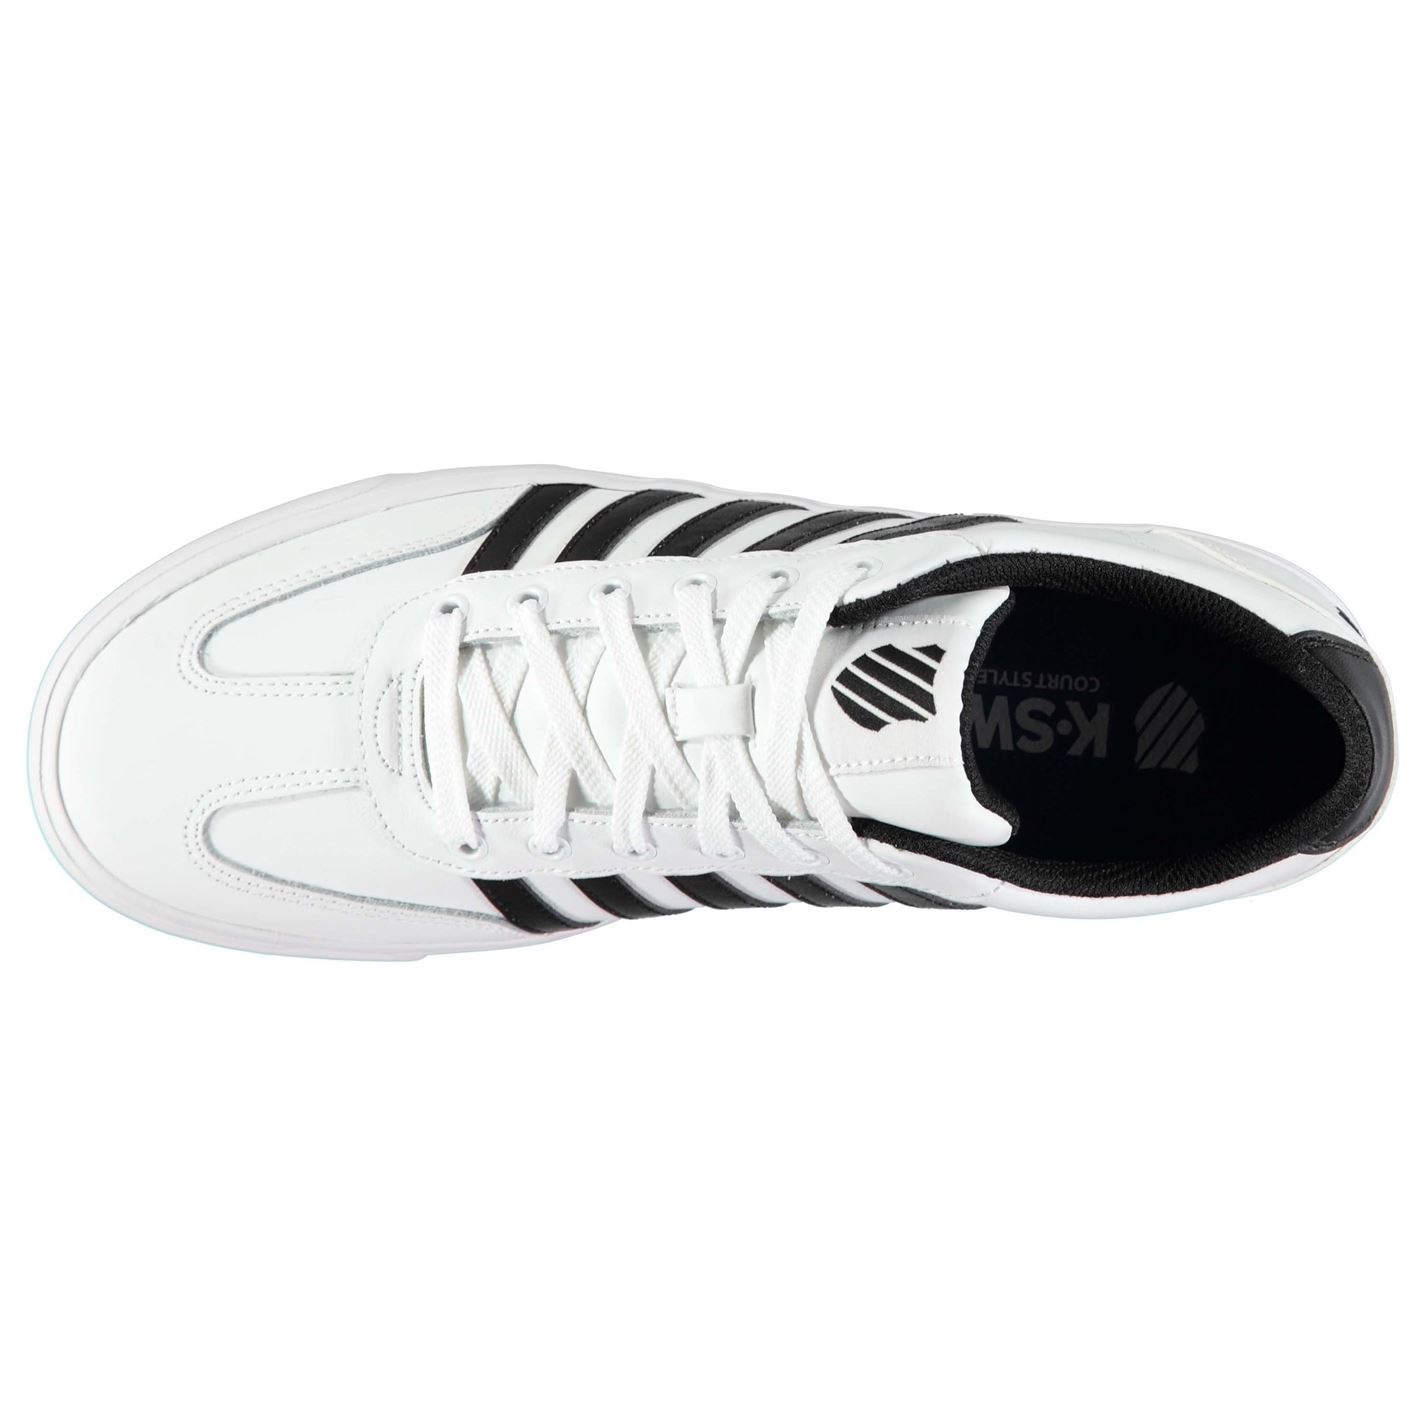 K Swiss Addison Vulc Sneakers Mens Gents Court Laces Fastened Padded Ankle